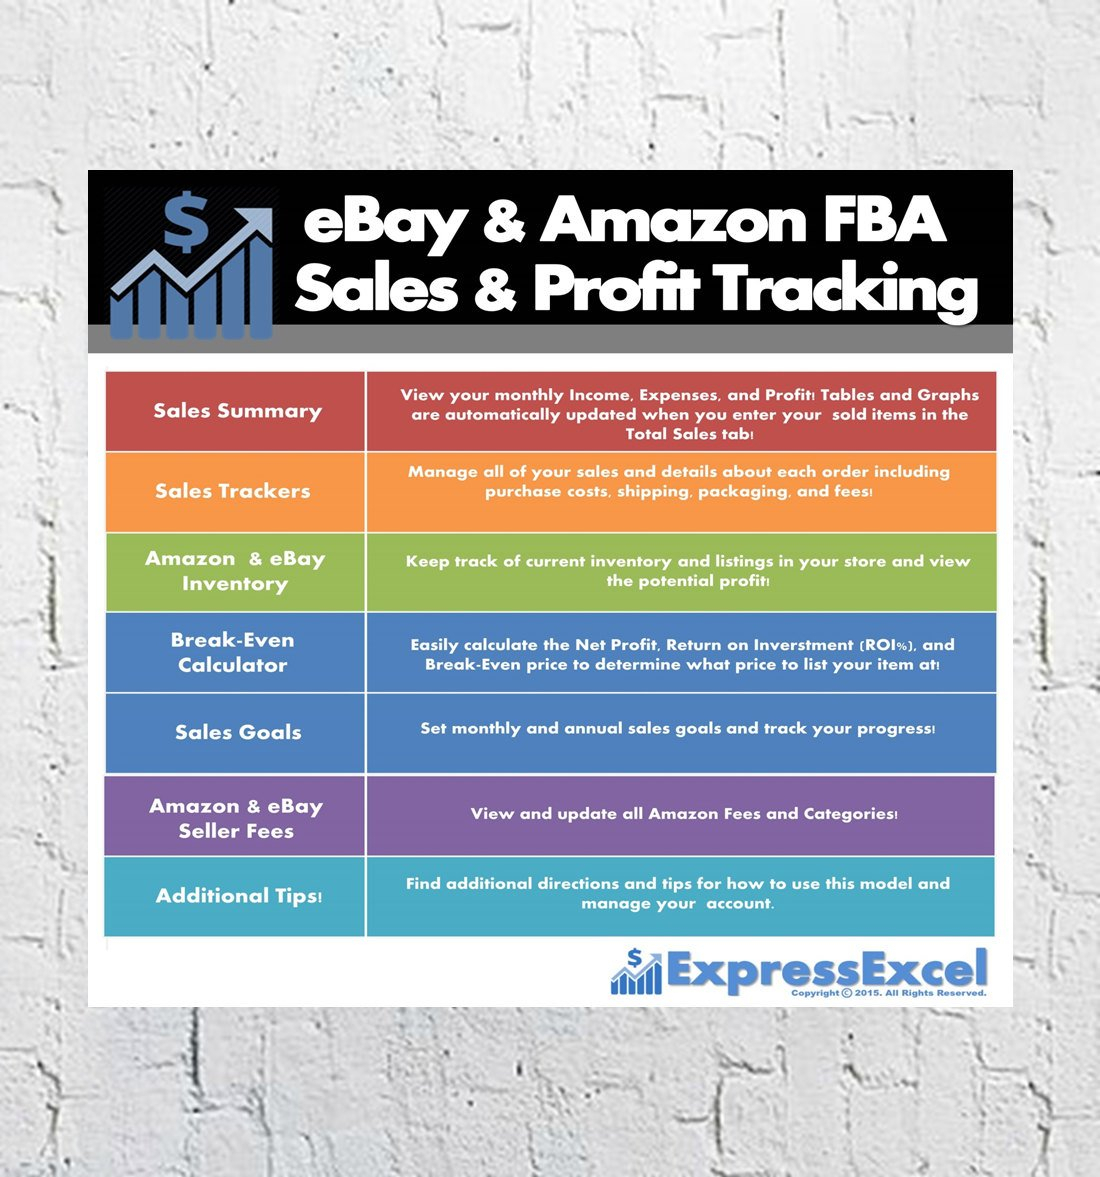 Ebay Amazon Fba Sales & Profit Tracking Break Even | Etsy Throughout Ebay And Amazon Sales Tracking Spreadsheet Ebay And Amazon Sales Tracking Spreadsheet Tracking Spreadshee Tracking Spreadshee ebay and amazon sales tracking spreadsheet